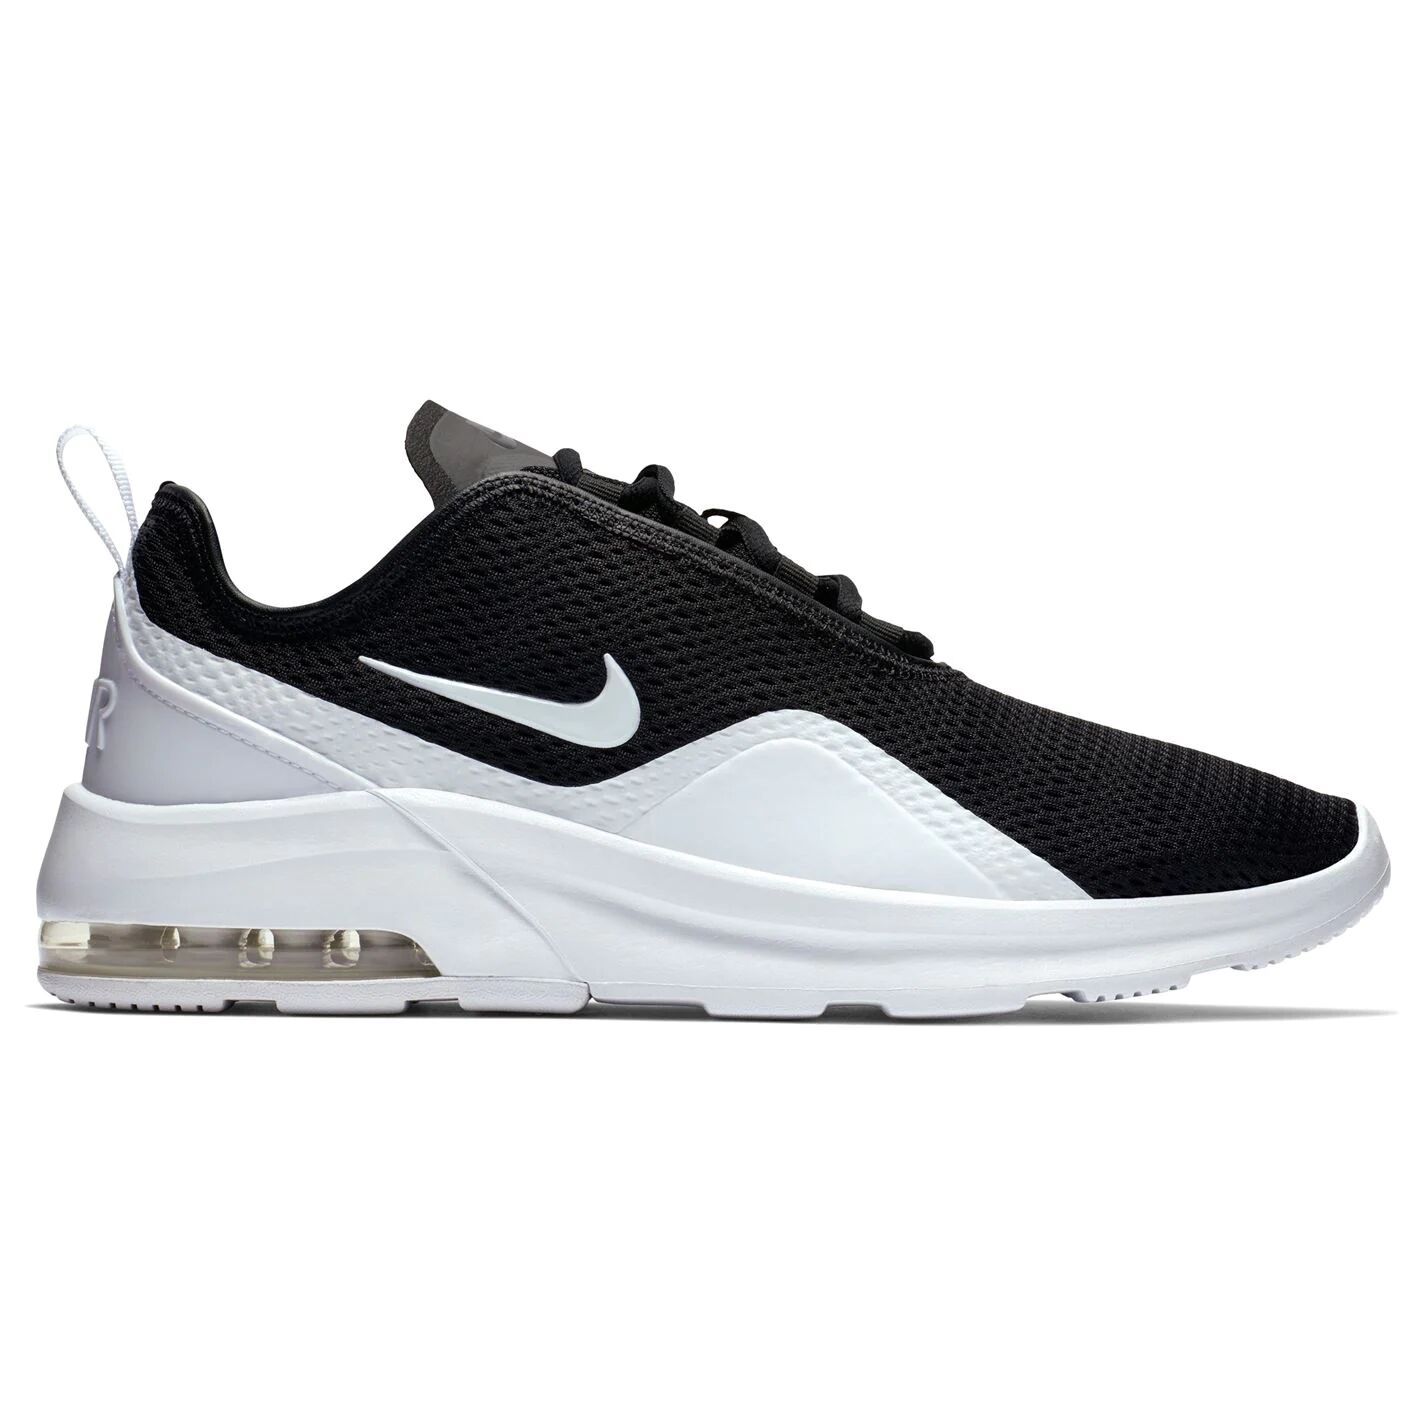 75ec76c6267 Nike Air Max Motion 2 Mens Trainers. Рейтинг: - 18%. Thumbnail 1 Thumbnail 1